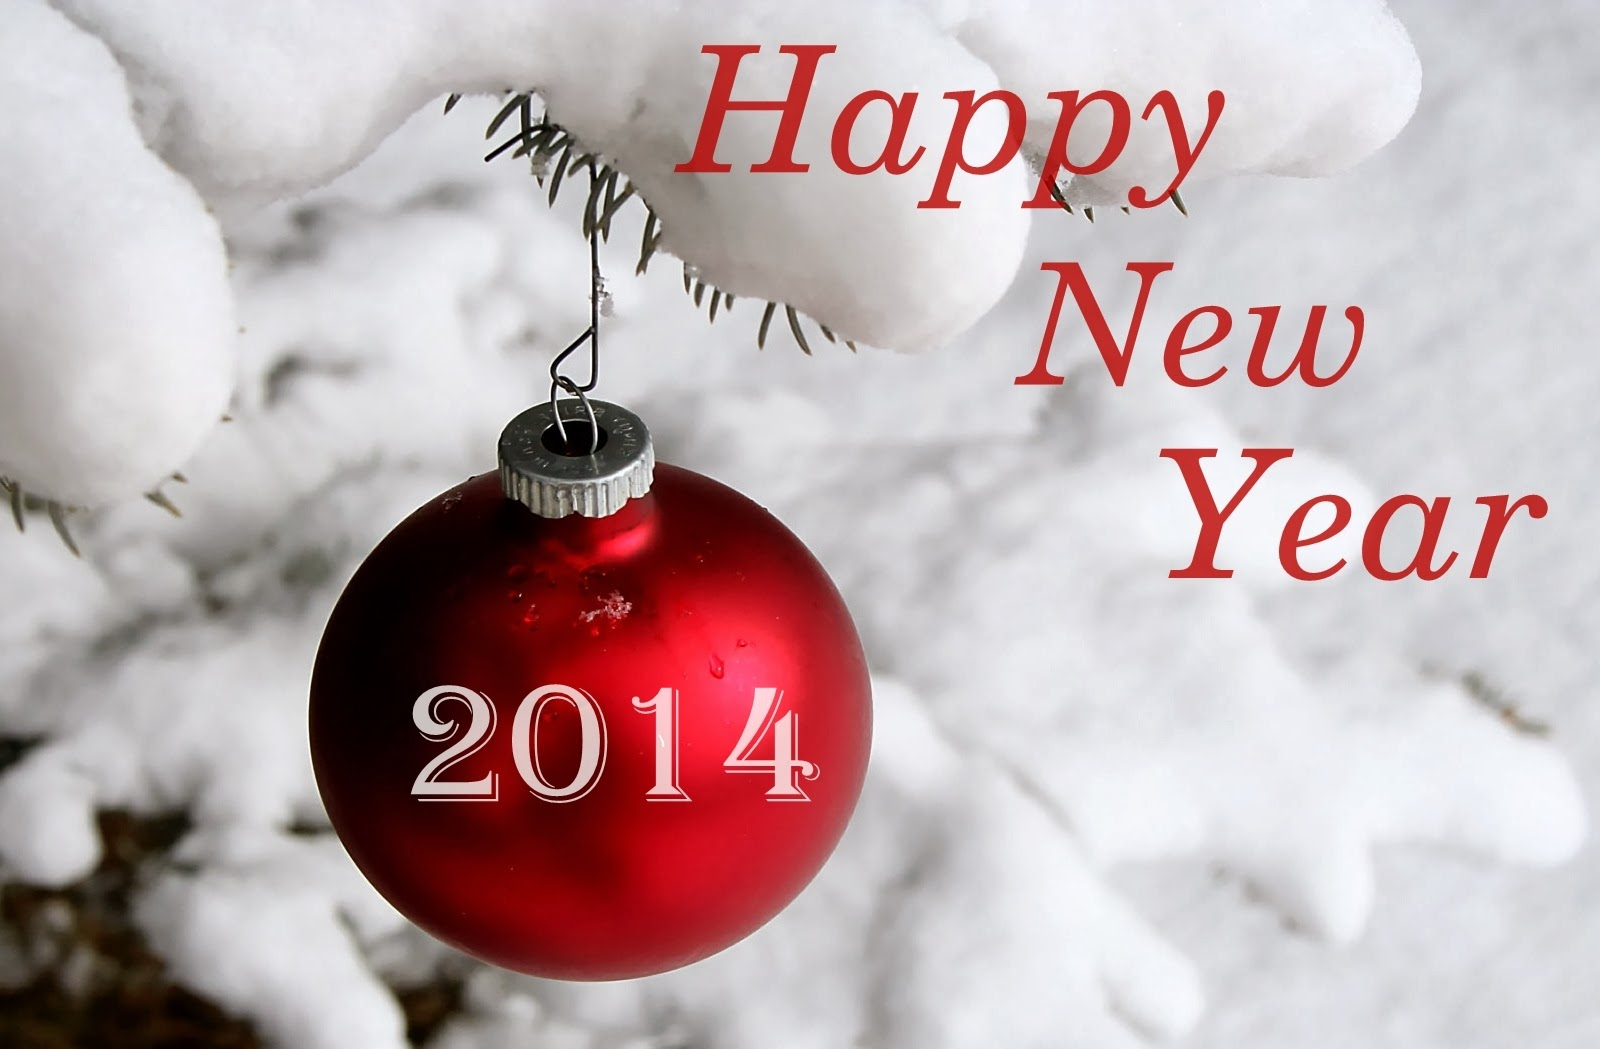 New Year 2014: Happy New Year Wishes Wallpapers, Photos - New Year ...